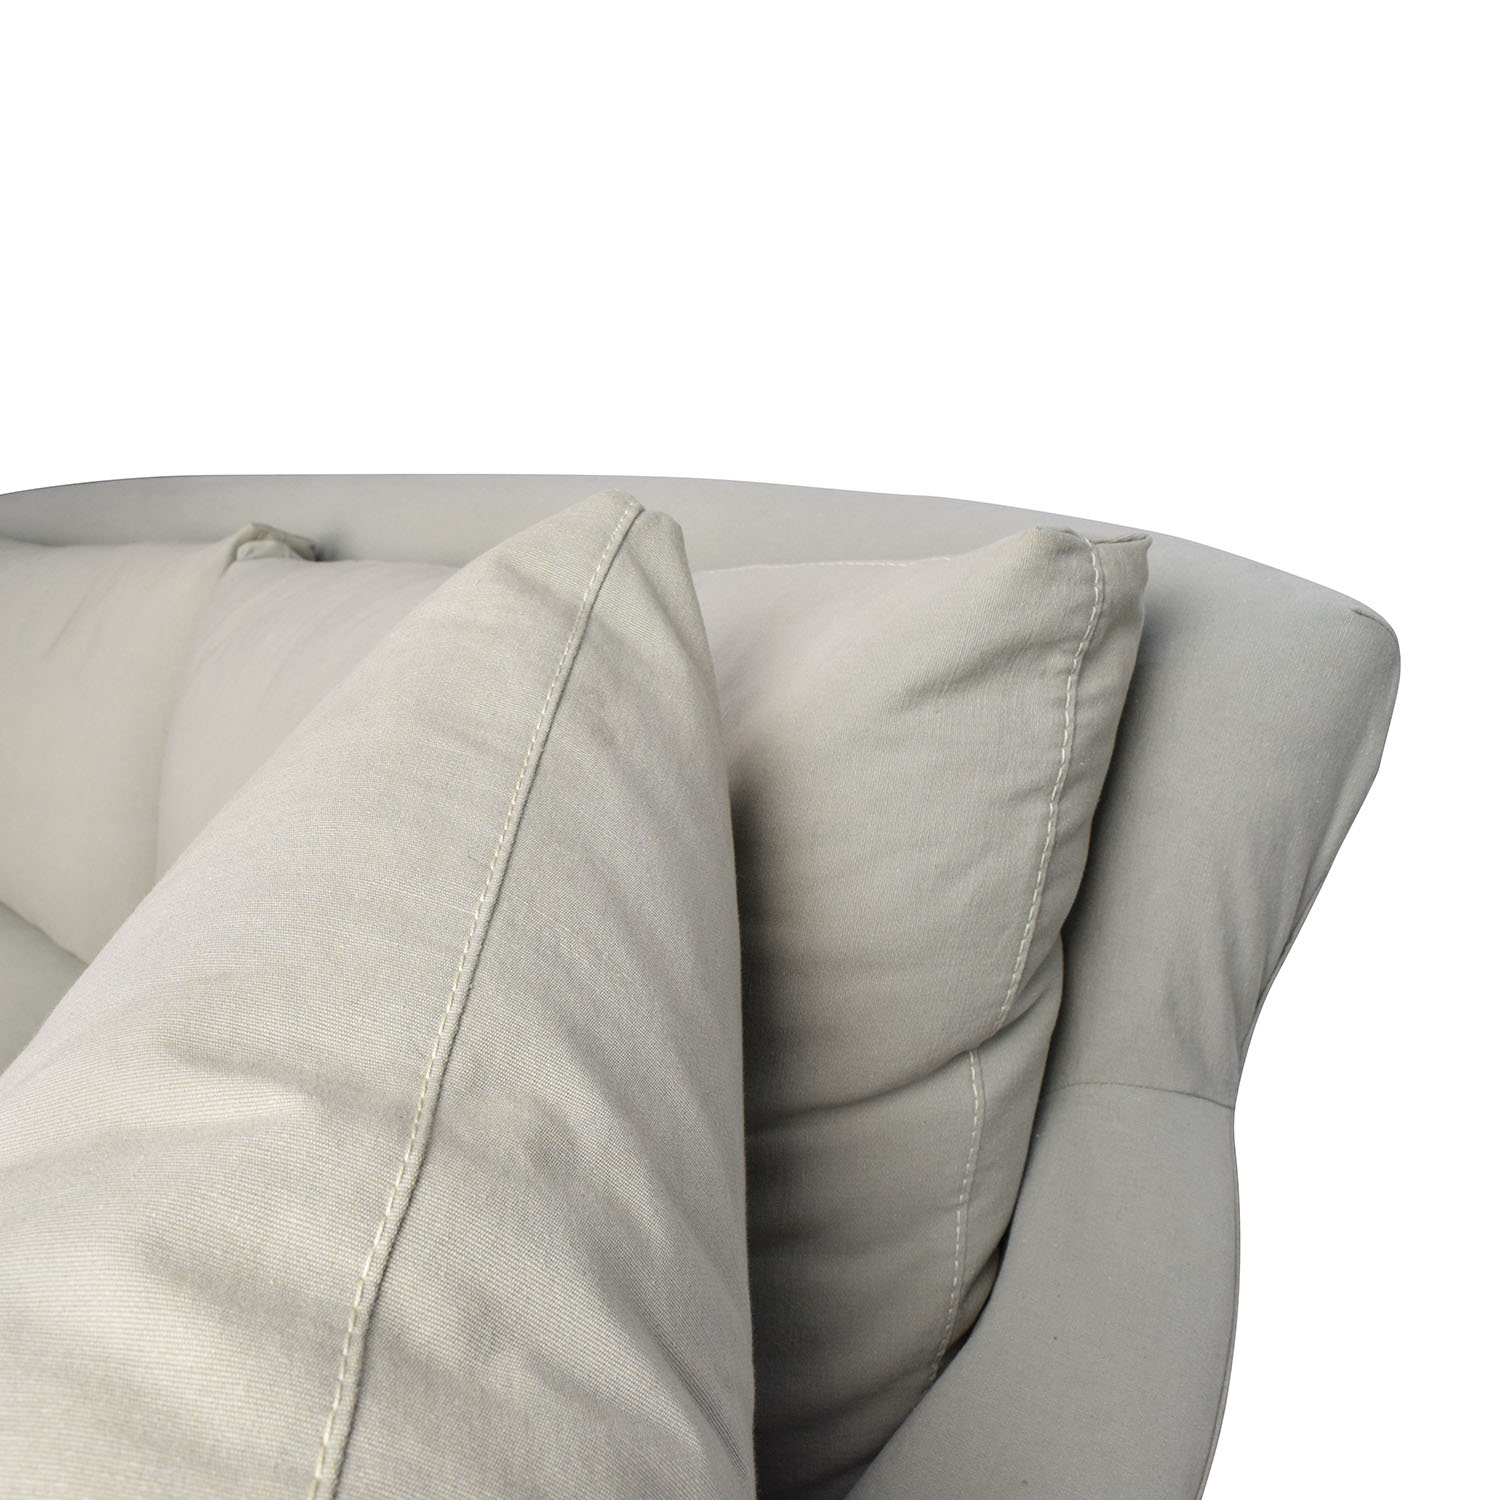 2 Piece Sectional Sofa Slipcovers 100 Down Filled